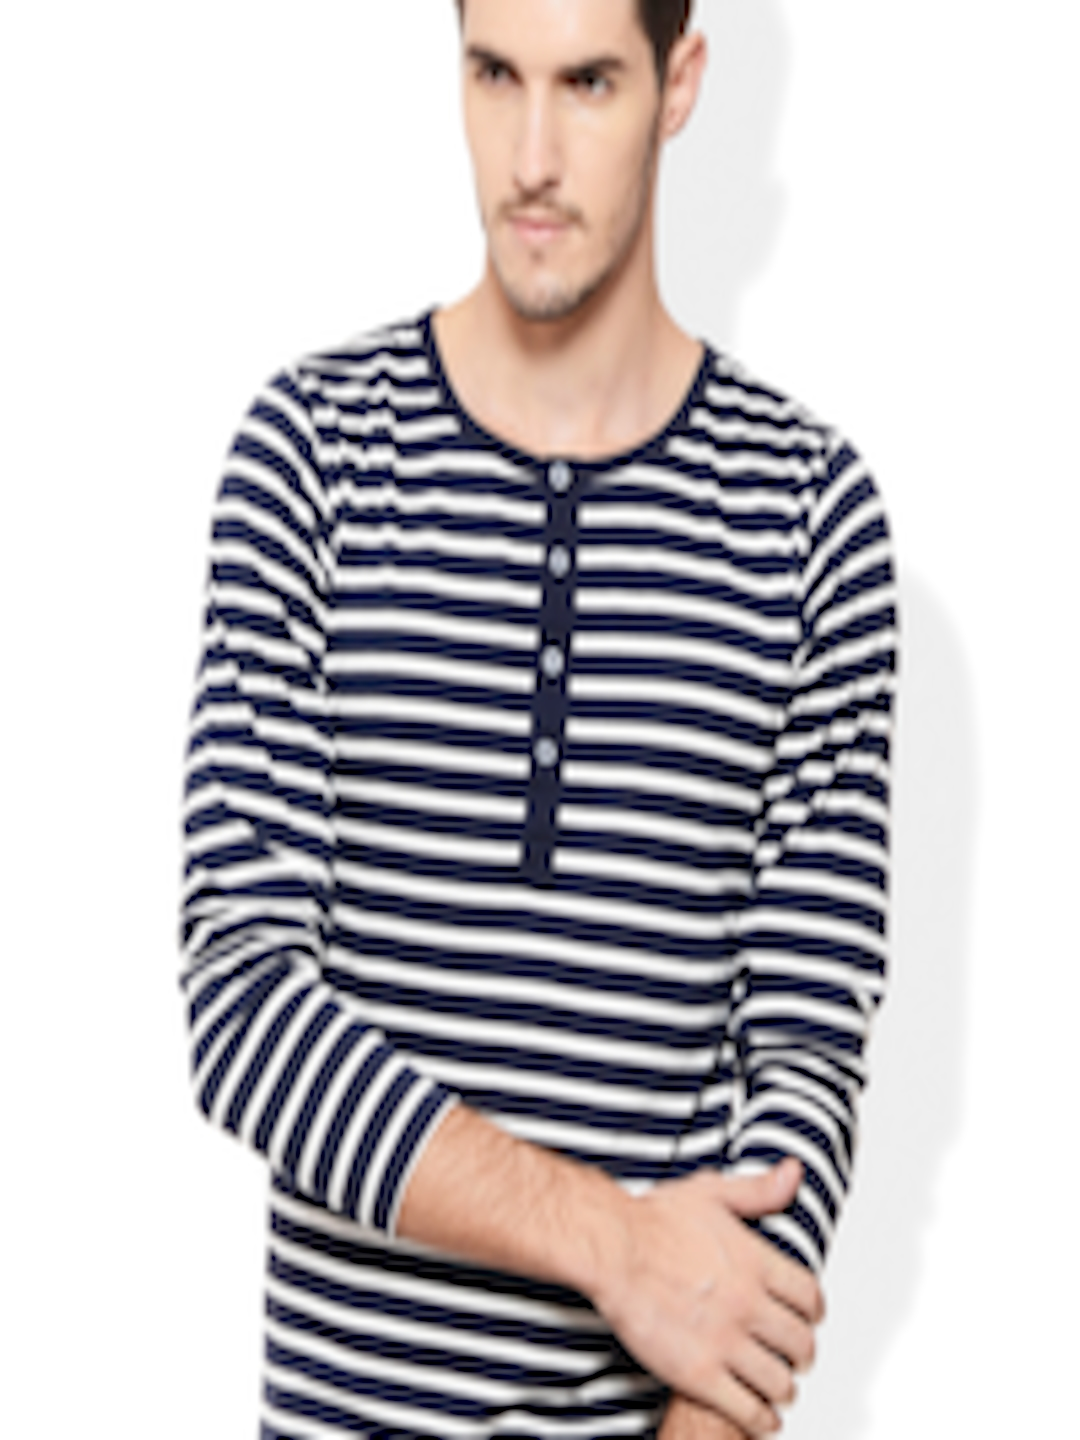 c180fe3a8bc Buy Rigo Navy   White Striped Henley Fit T Shirt - Tshirts for Men 1484701